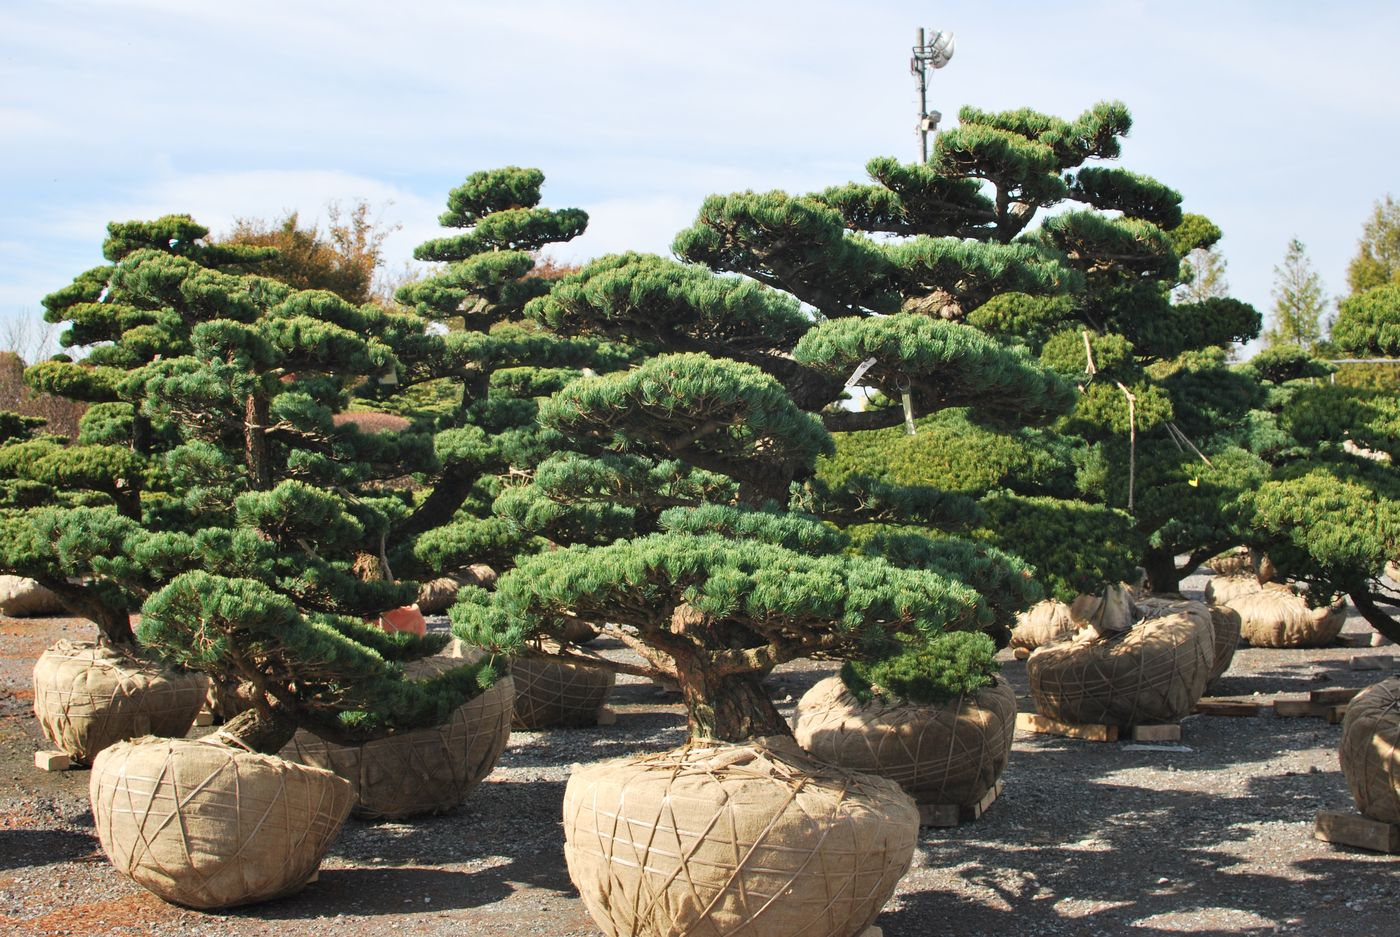 Bonsai Moravia Blog JAPAN 2015 02 BONSAI MARKET AT CHIBA